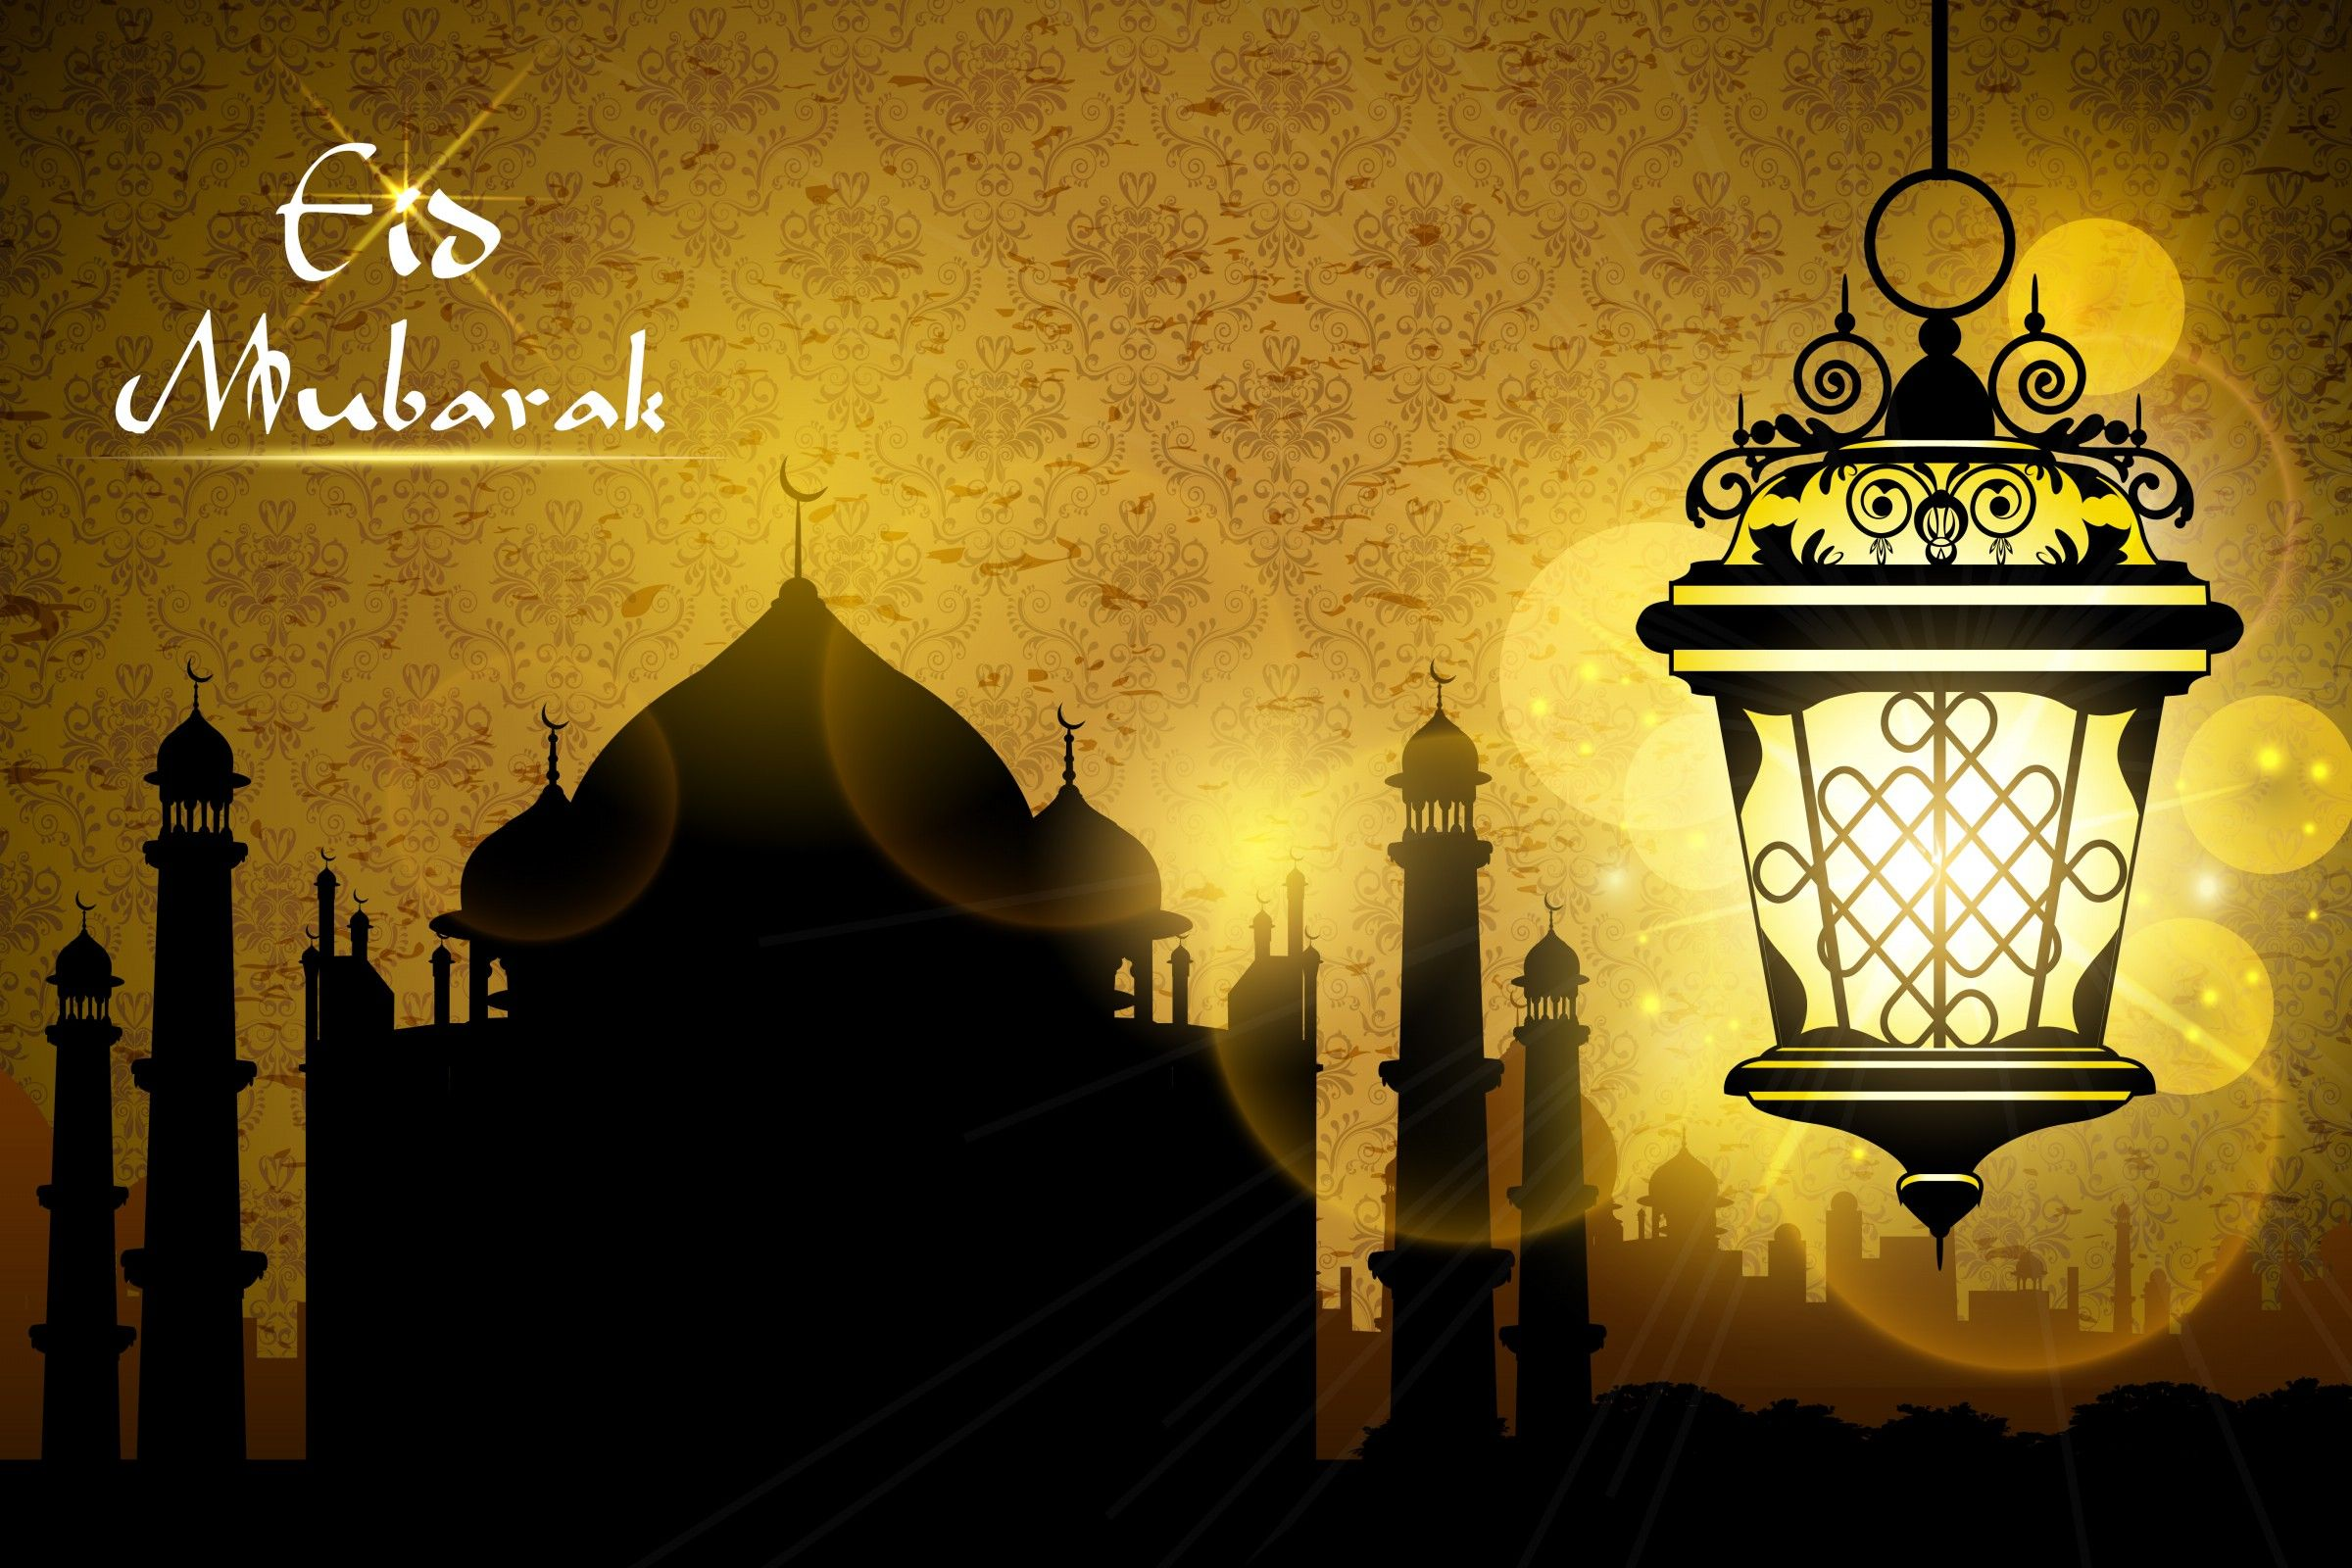 Happy eid al adha 2014 mubarak greetings cards wallpapers hd happy eid al adha 2014 mubarak greetings cards wallpapers kristyandbryce Choice Image